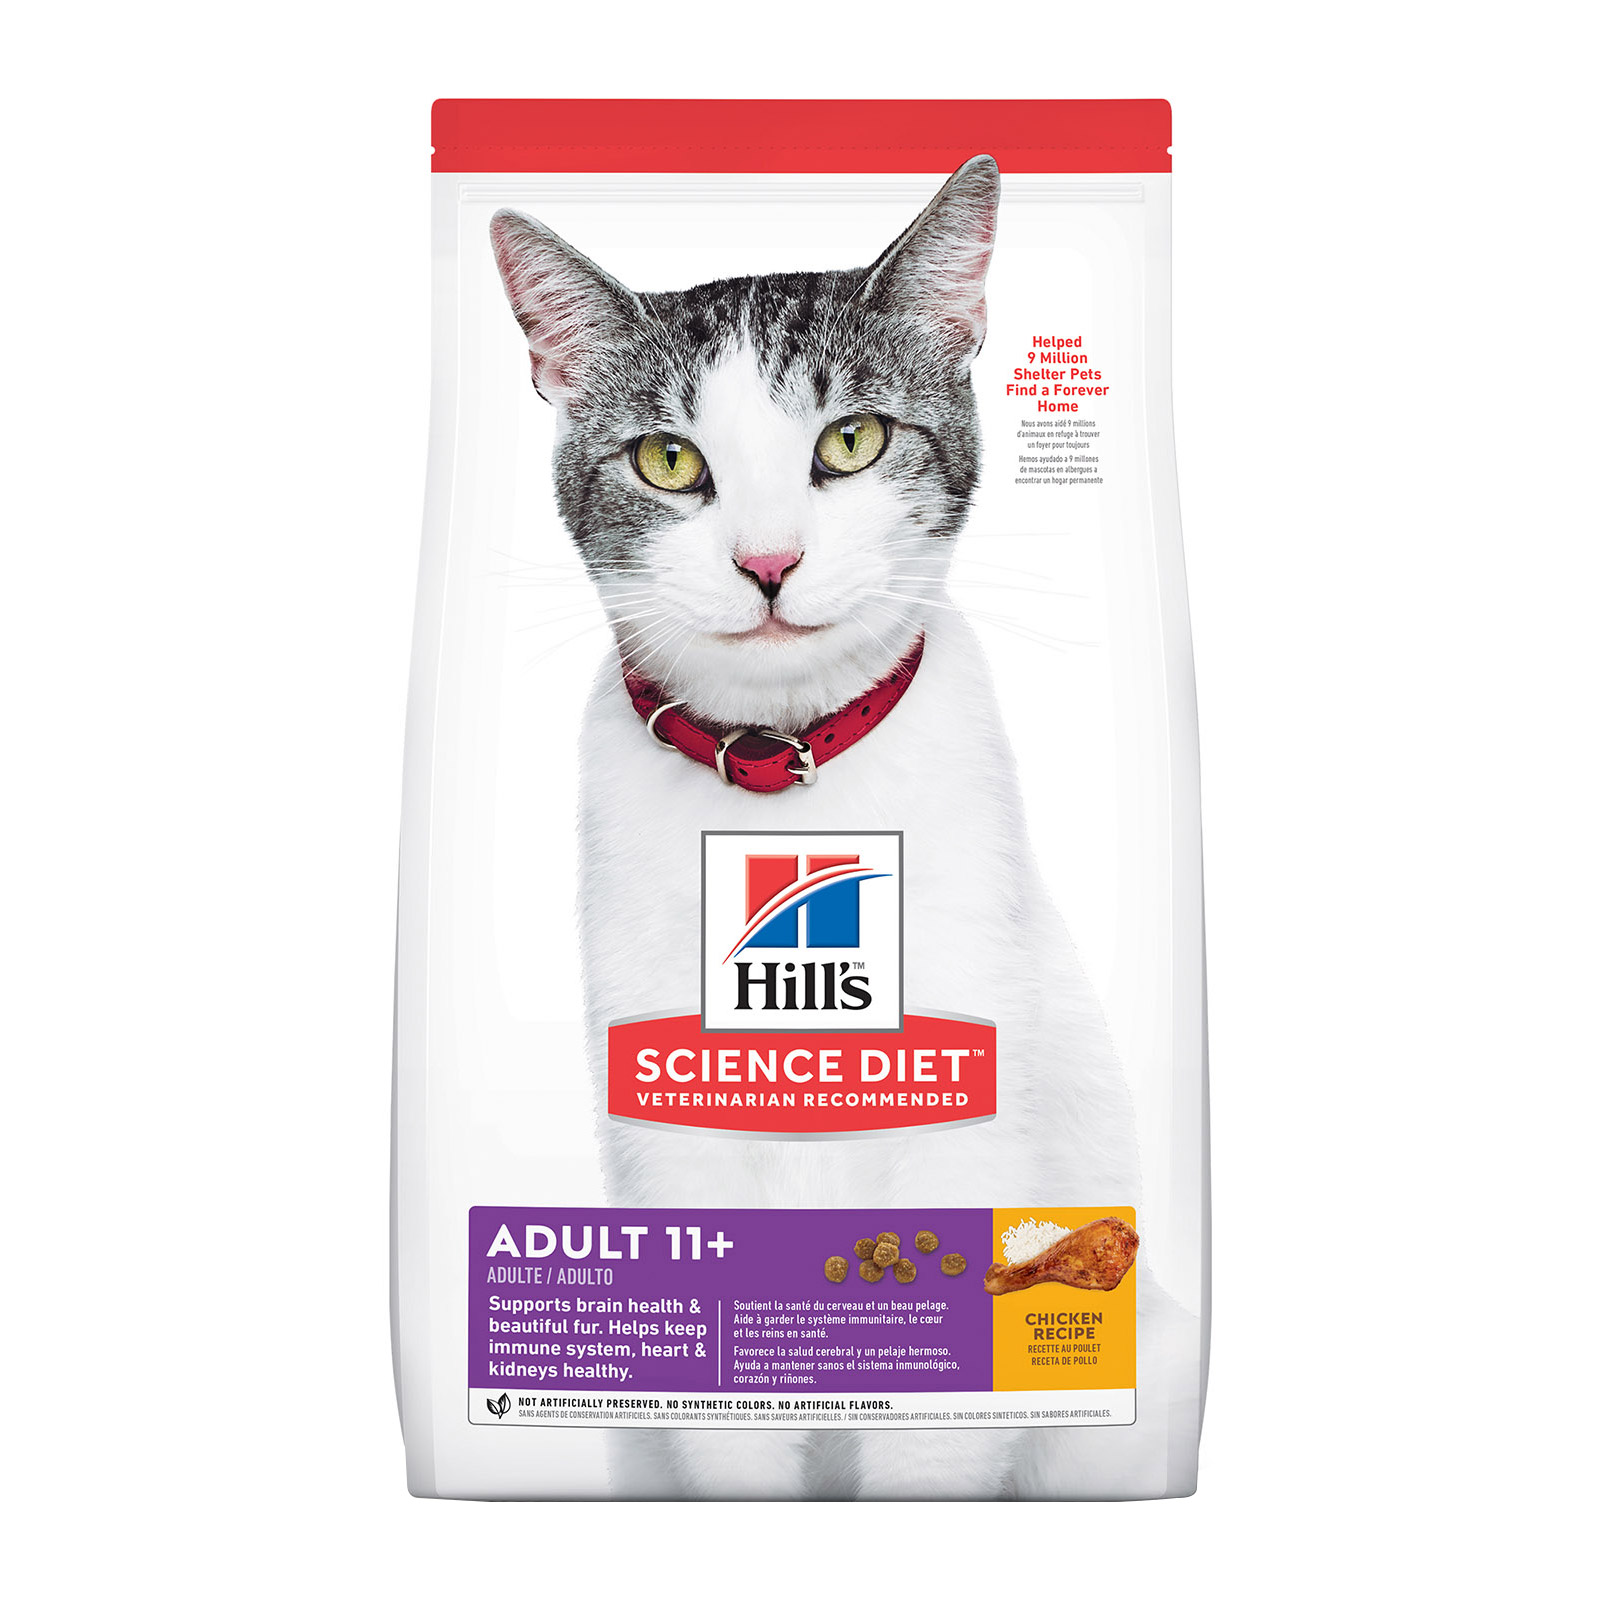 Hill's Science Diet Adult 11+ Chicken Senior Dry Cat Food